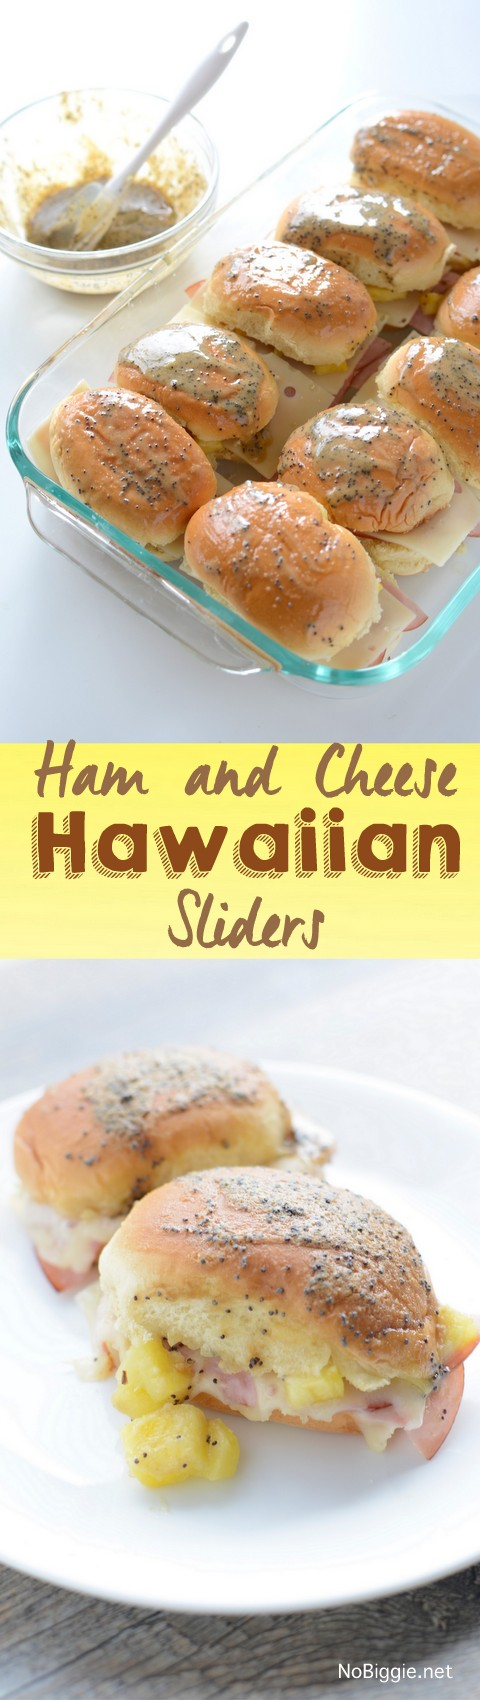 Ham and Cheese Hawaiian Sliders | NoBiggie.net